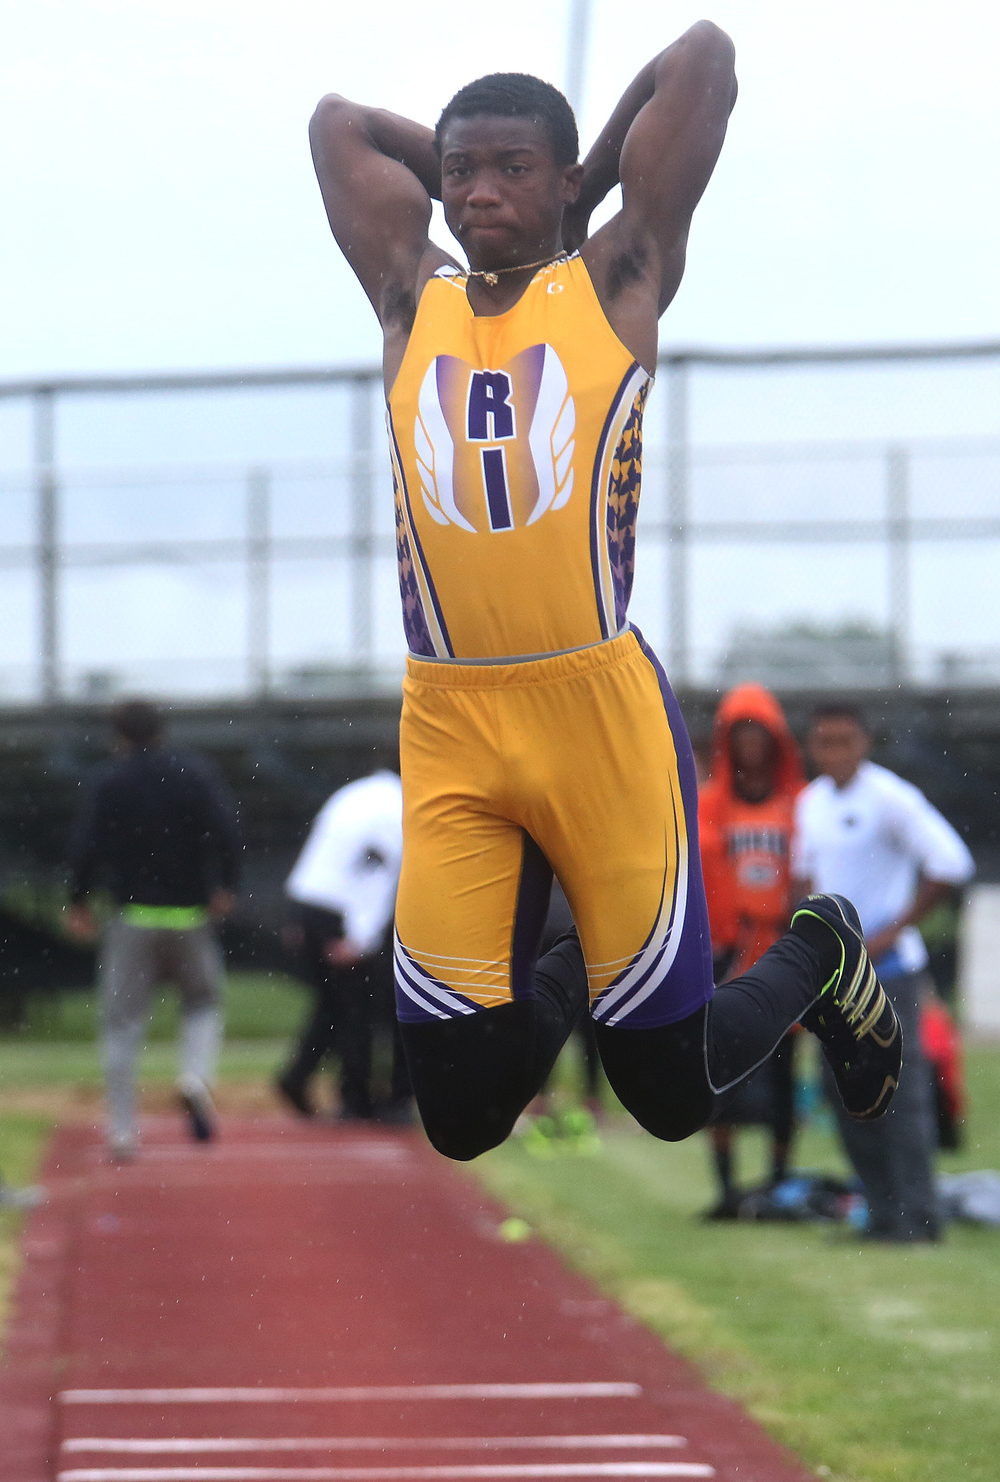 Rushville's Basil Buckner's form in route to winning the long jump in 20-08.75 feet involved both his arms tucked behind his head as he launches himself airborne Monday. David Spencer/The State Journal-Register